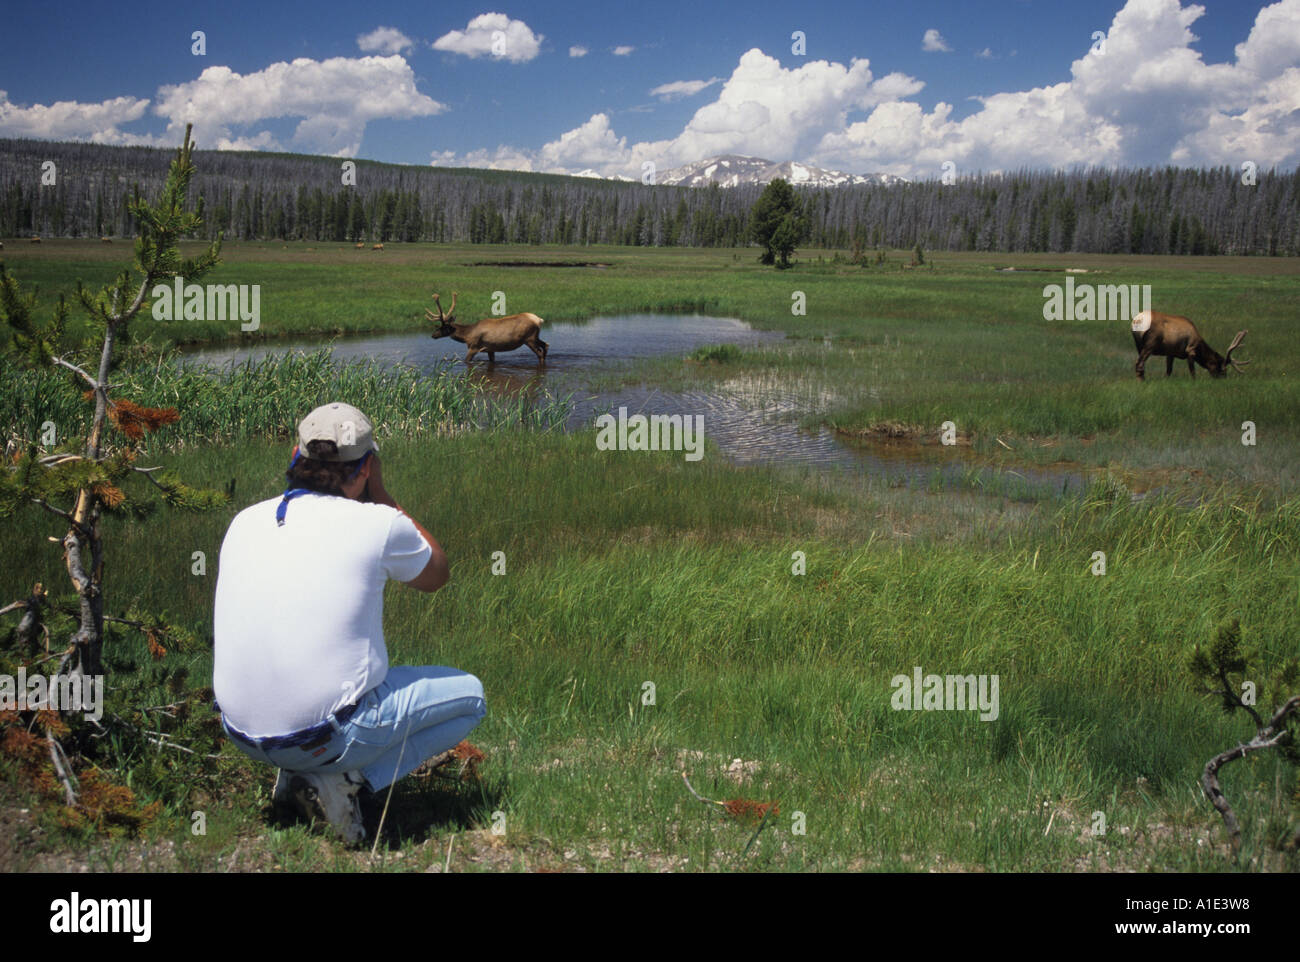 A park visitor taking photos of elk at Yellowstone National Park Wyoming United States of America Stock Photo